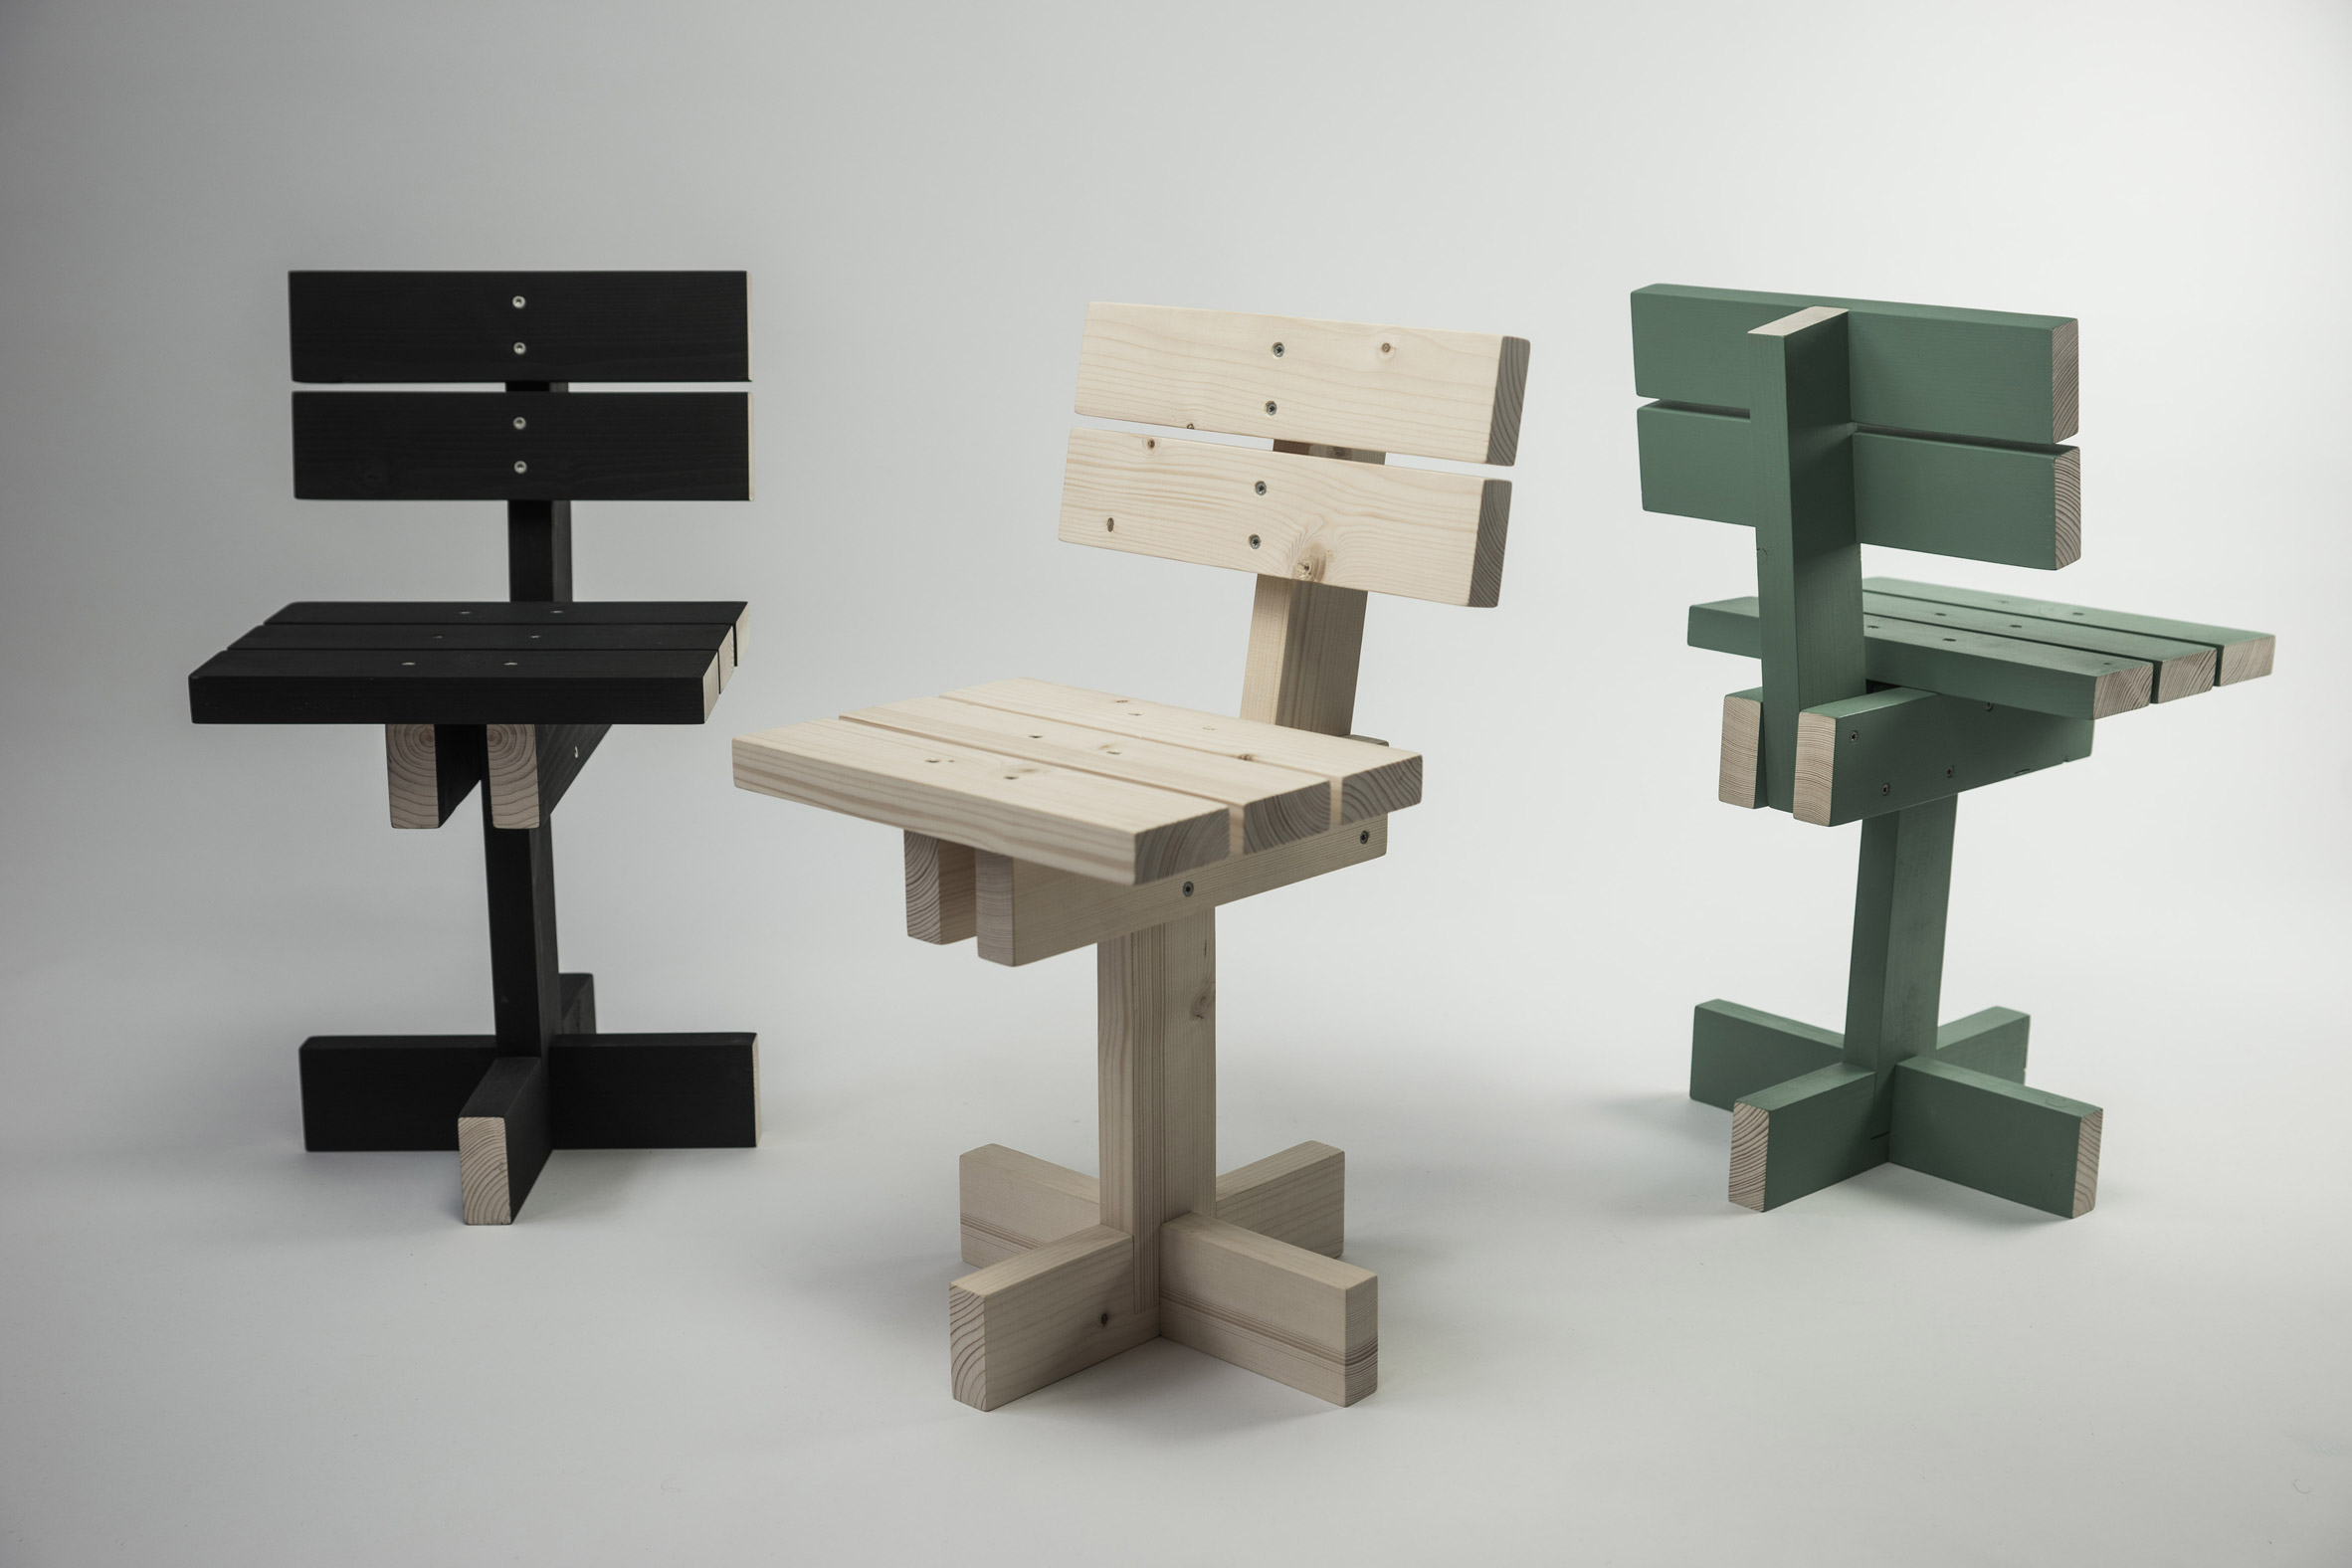 Hamaika kids' chair by Unai Rollan is assembled from 11 equal pieces